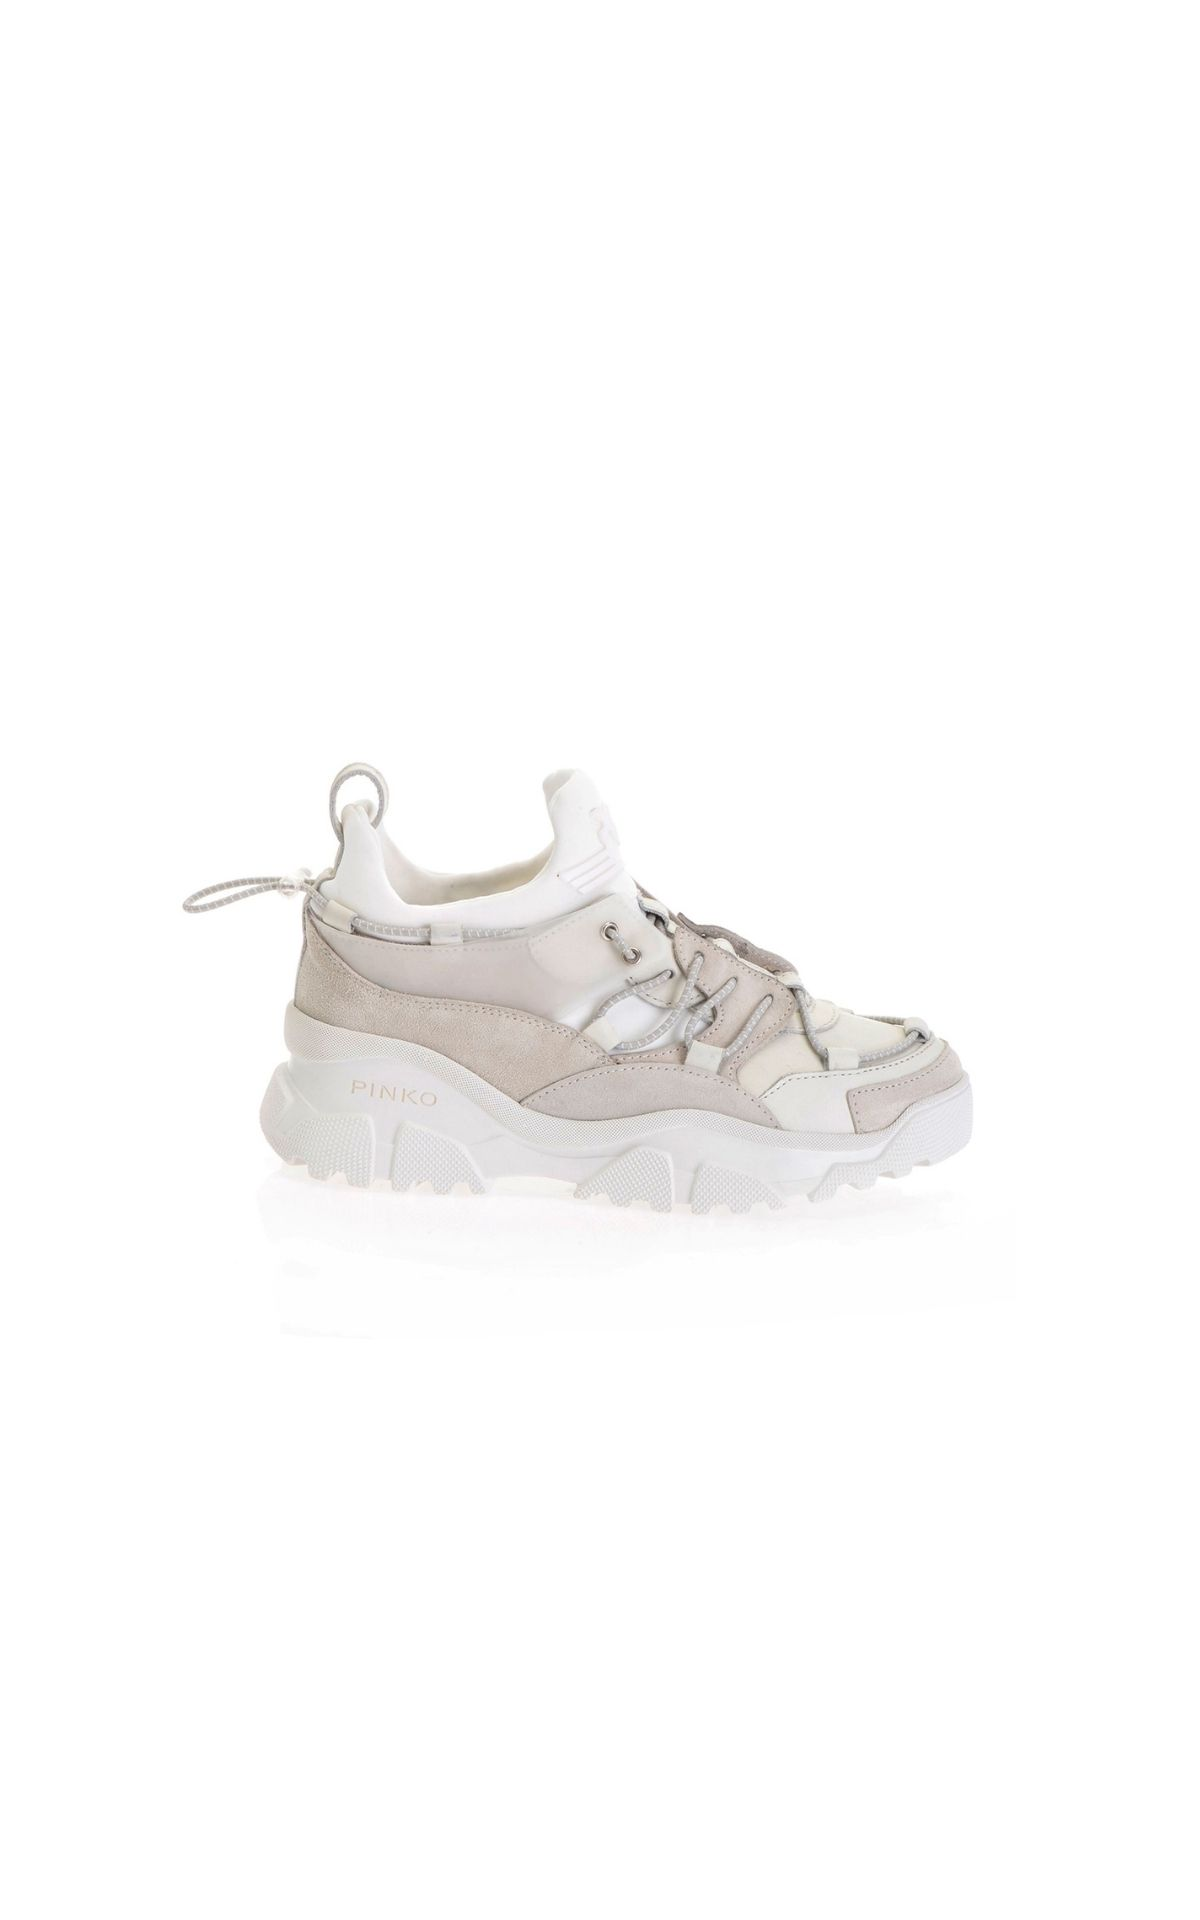 La Vallée Village Pinko Leather sneakers with suede inserts